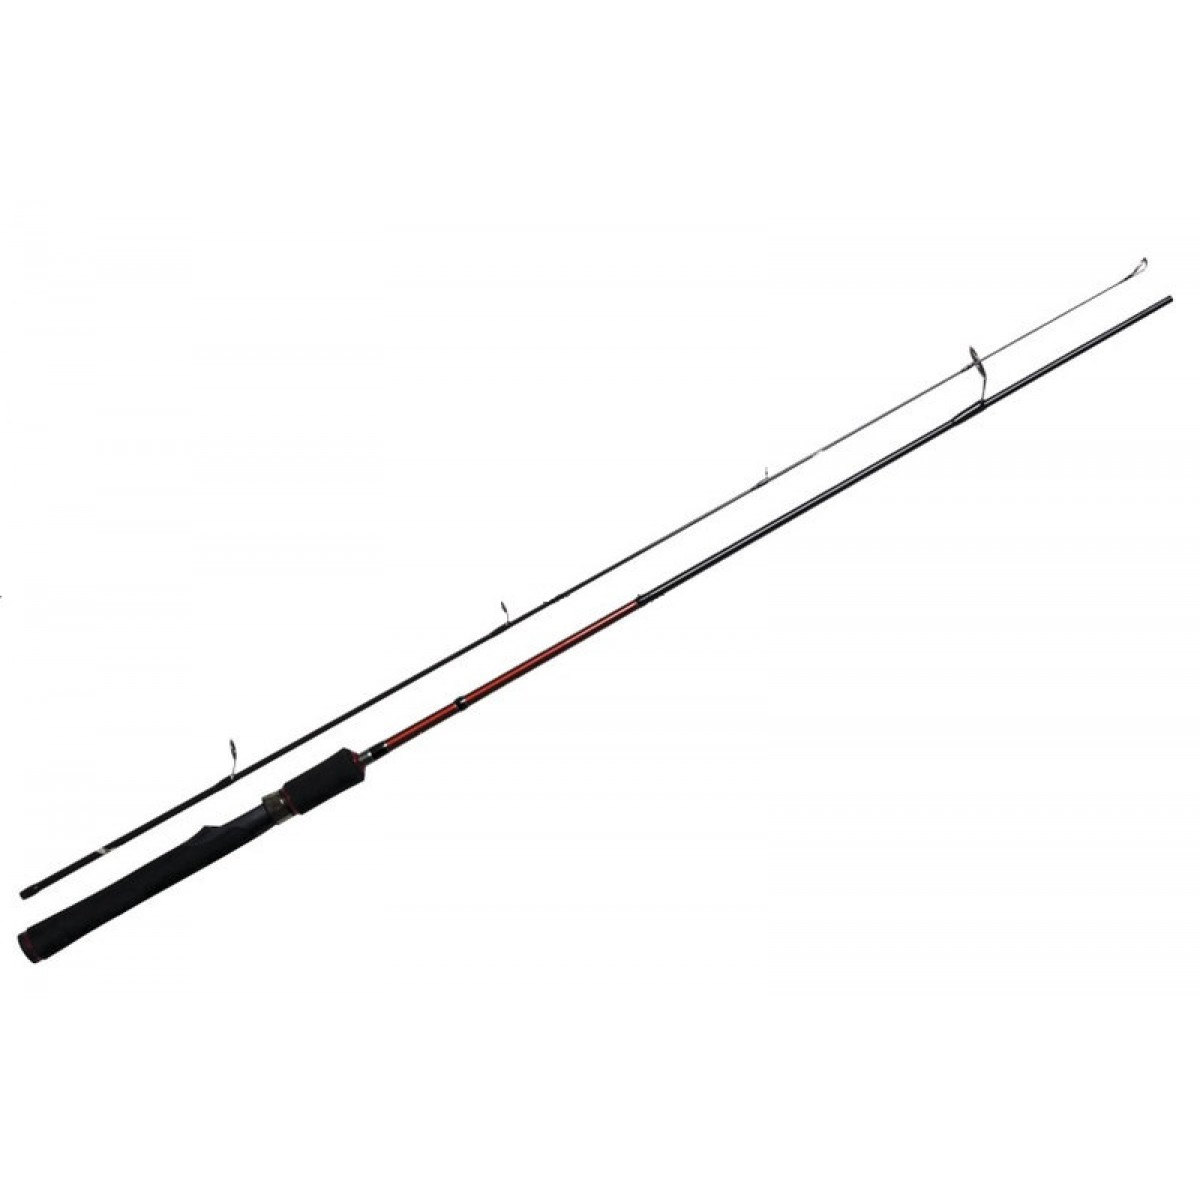 Rod Spinning Maximus Winner 21L 2,1 M 3-15g